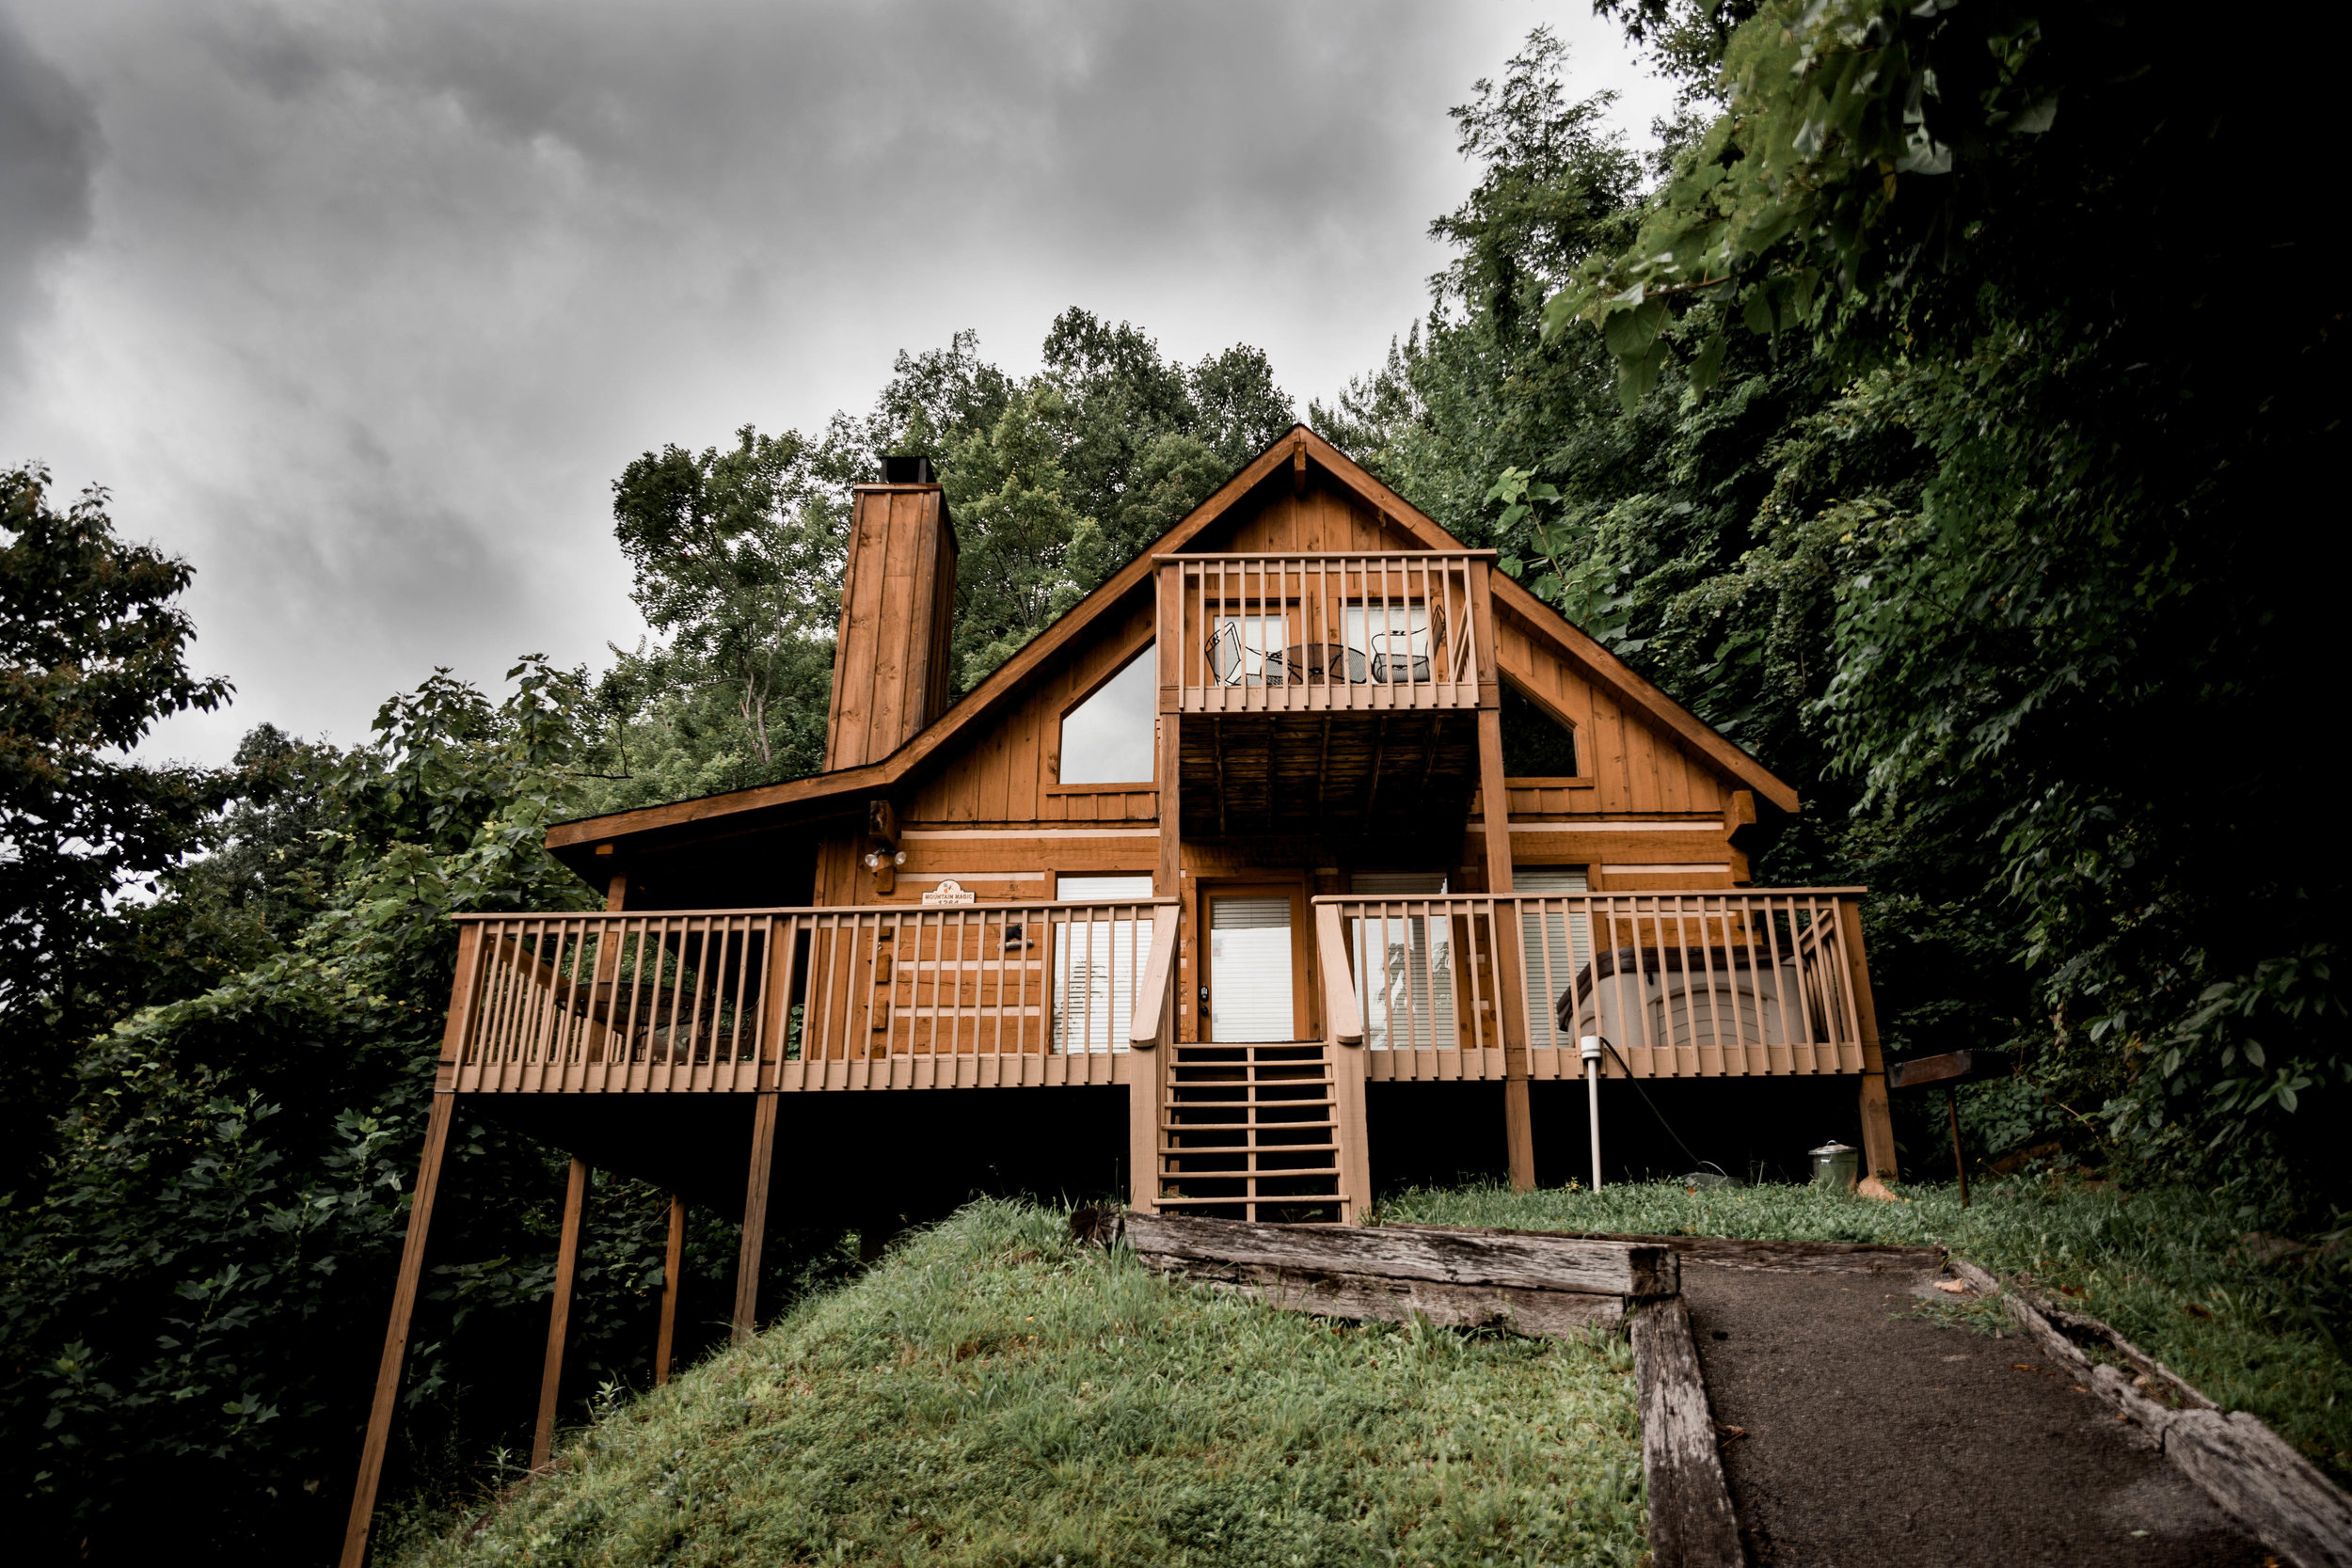 Tennessee- Mountain Magic - A beautifully crafted intimate cabin nestled in the Great Smoky Mountain National Park.